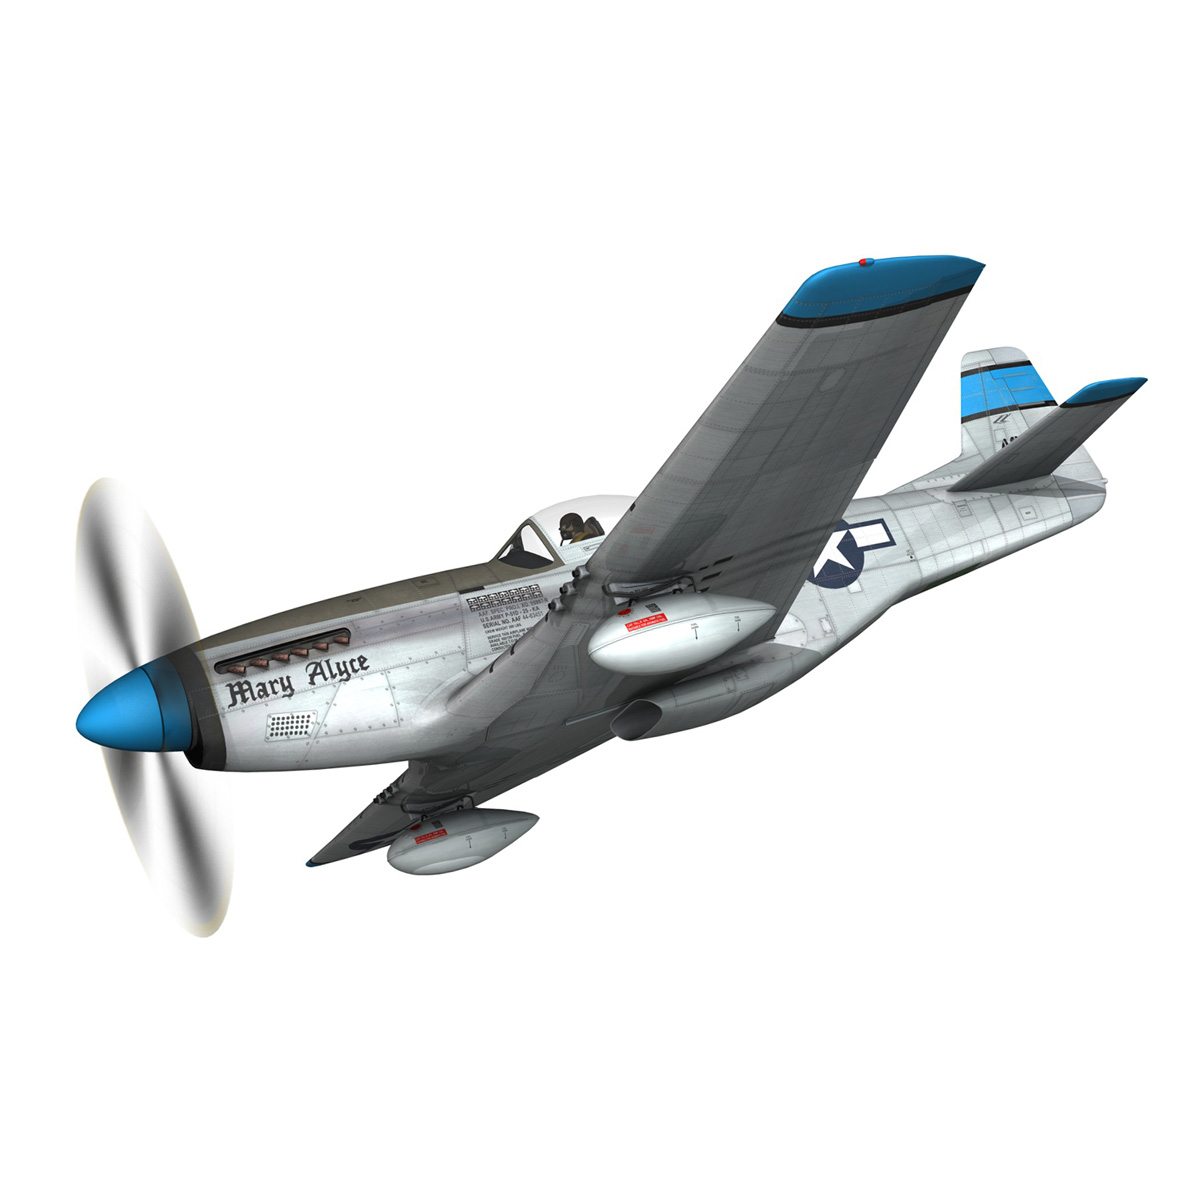 north american p-51d – mustang – mary alyce 3d model 3ds fbx c4d lwo obj 267568